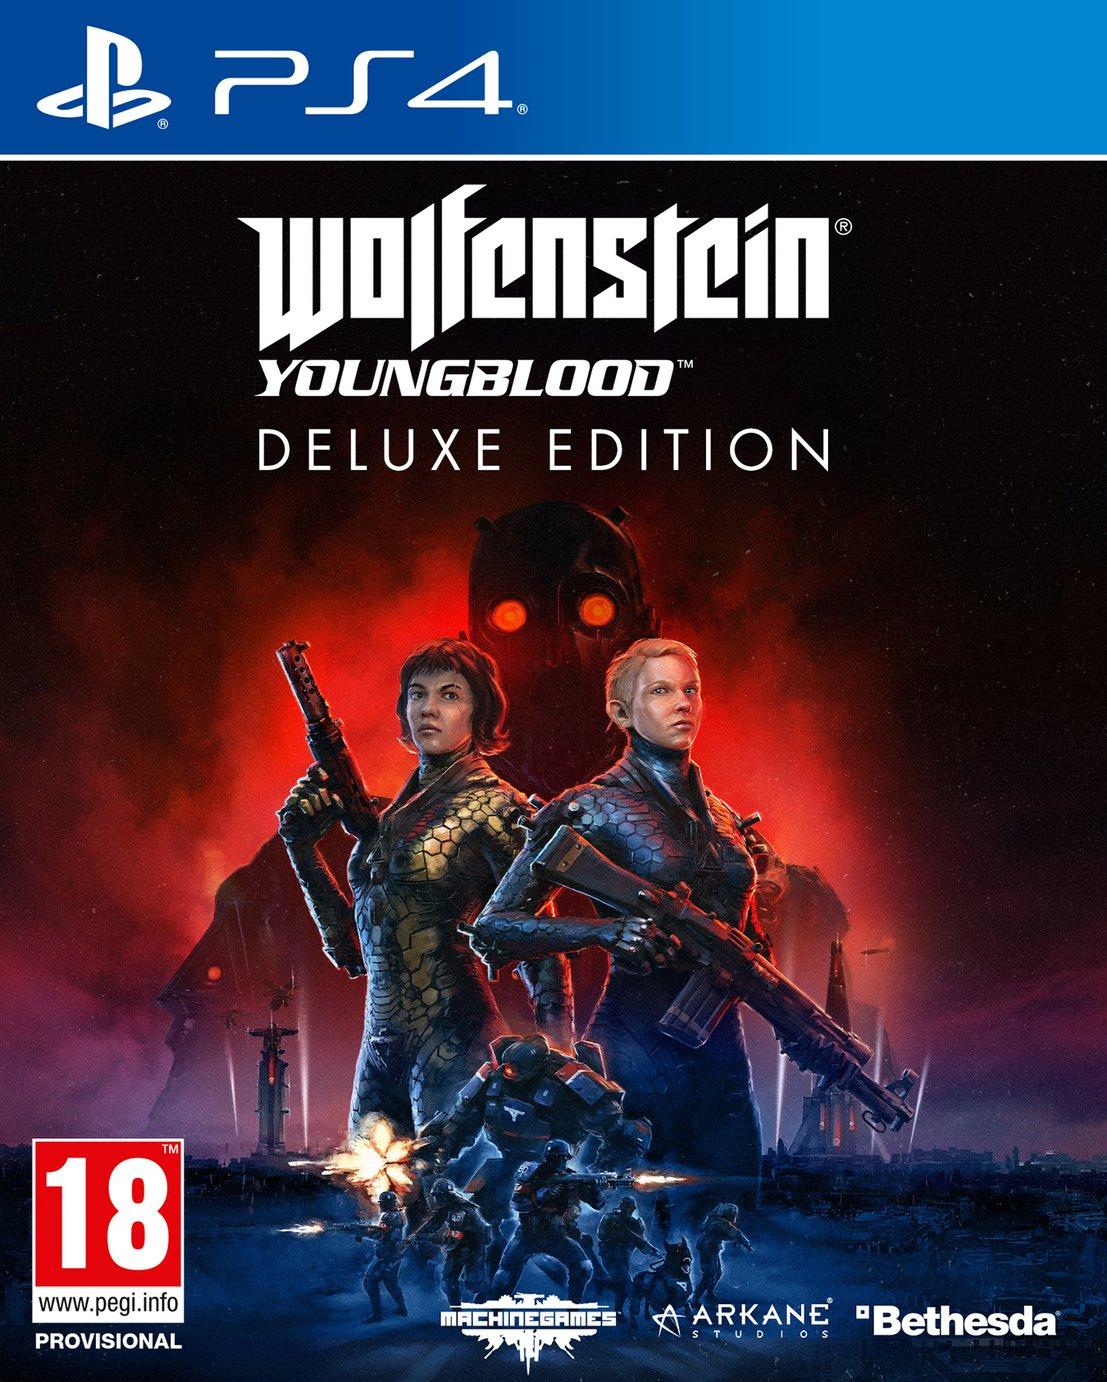 Wolfenstein Youngblood PS4 Pre-Order Game